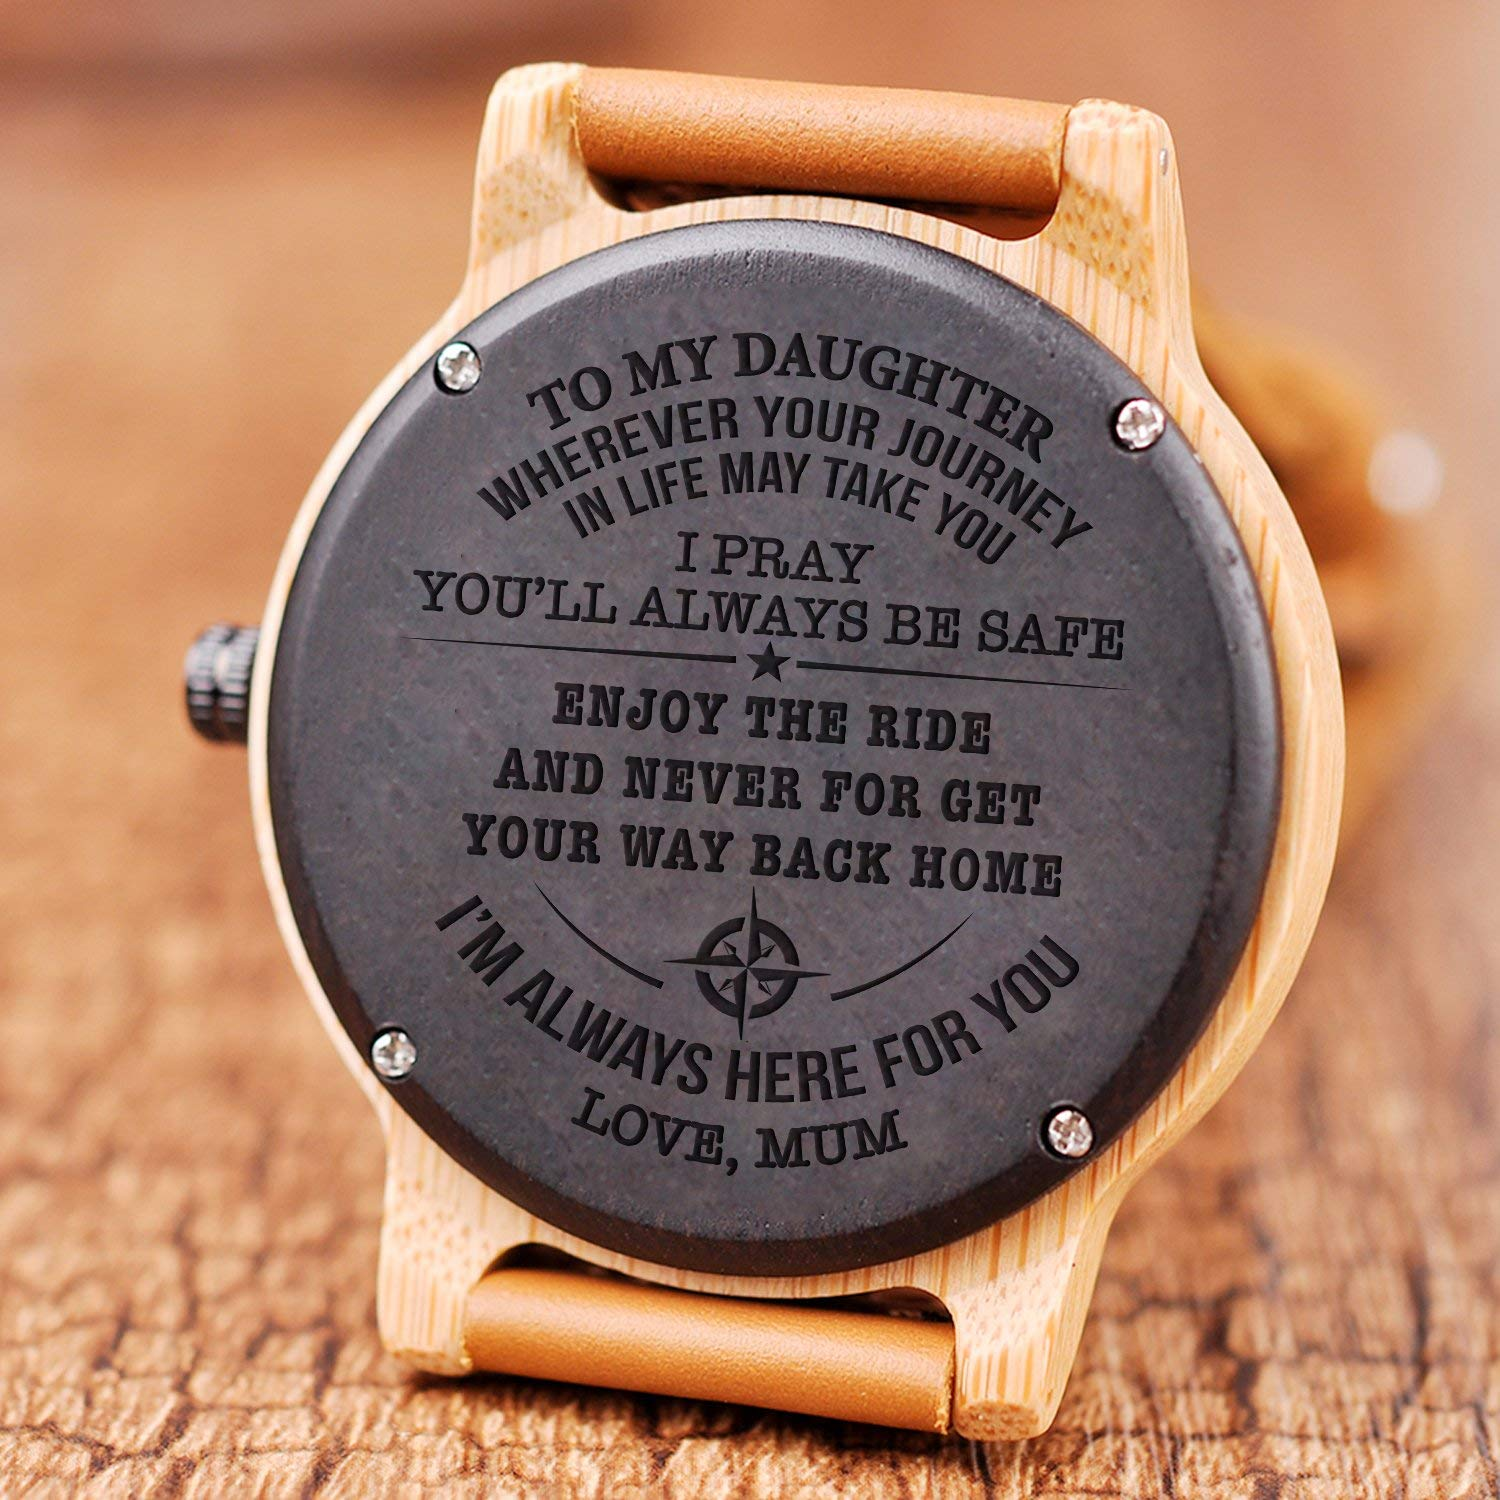 to My Daughter - Wherever Your Journey in Life May take You - Wood Watch for Woman - Natural Wooden Groomsmen Watch for Daughter Natural Ebony Customized Wood Watch Birthday Anniversary Gift by Staripy